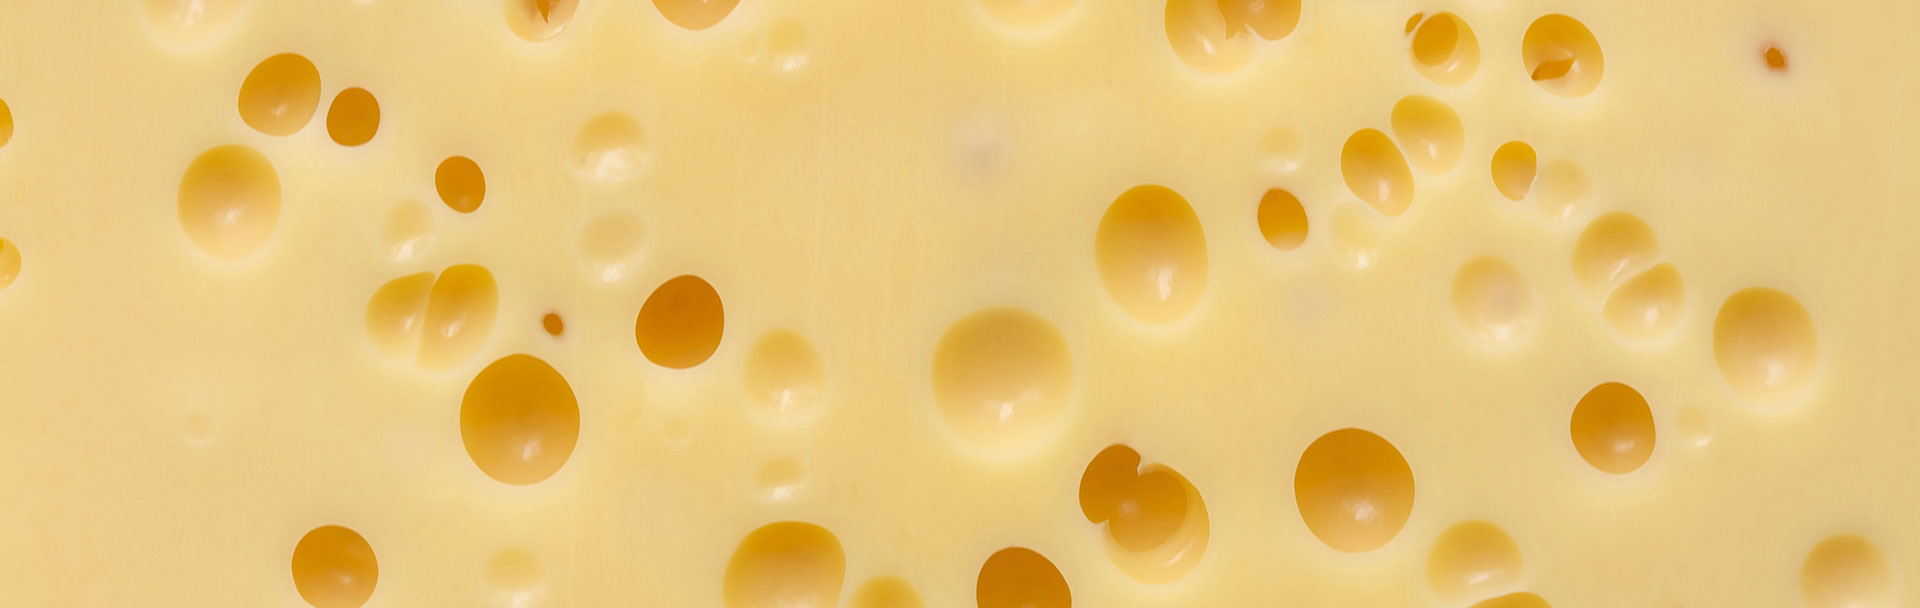 swiss-cheese-model.jpg